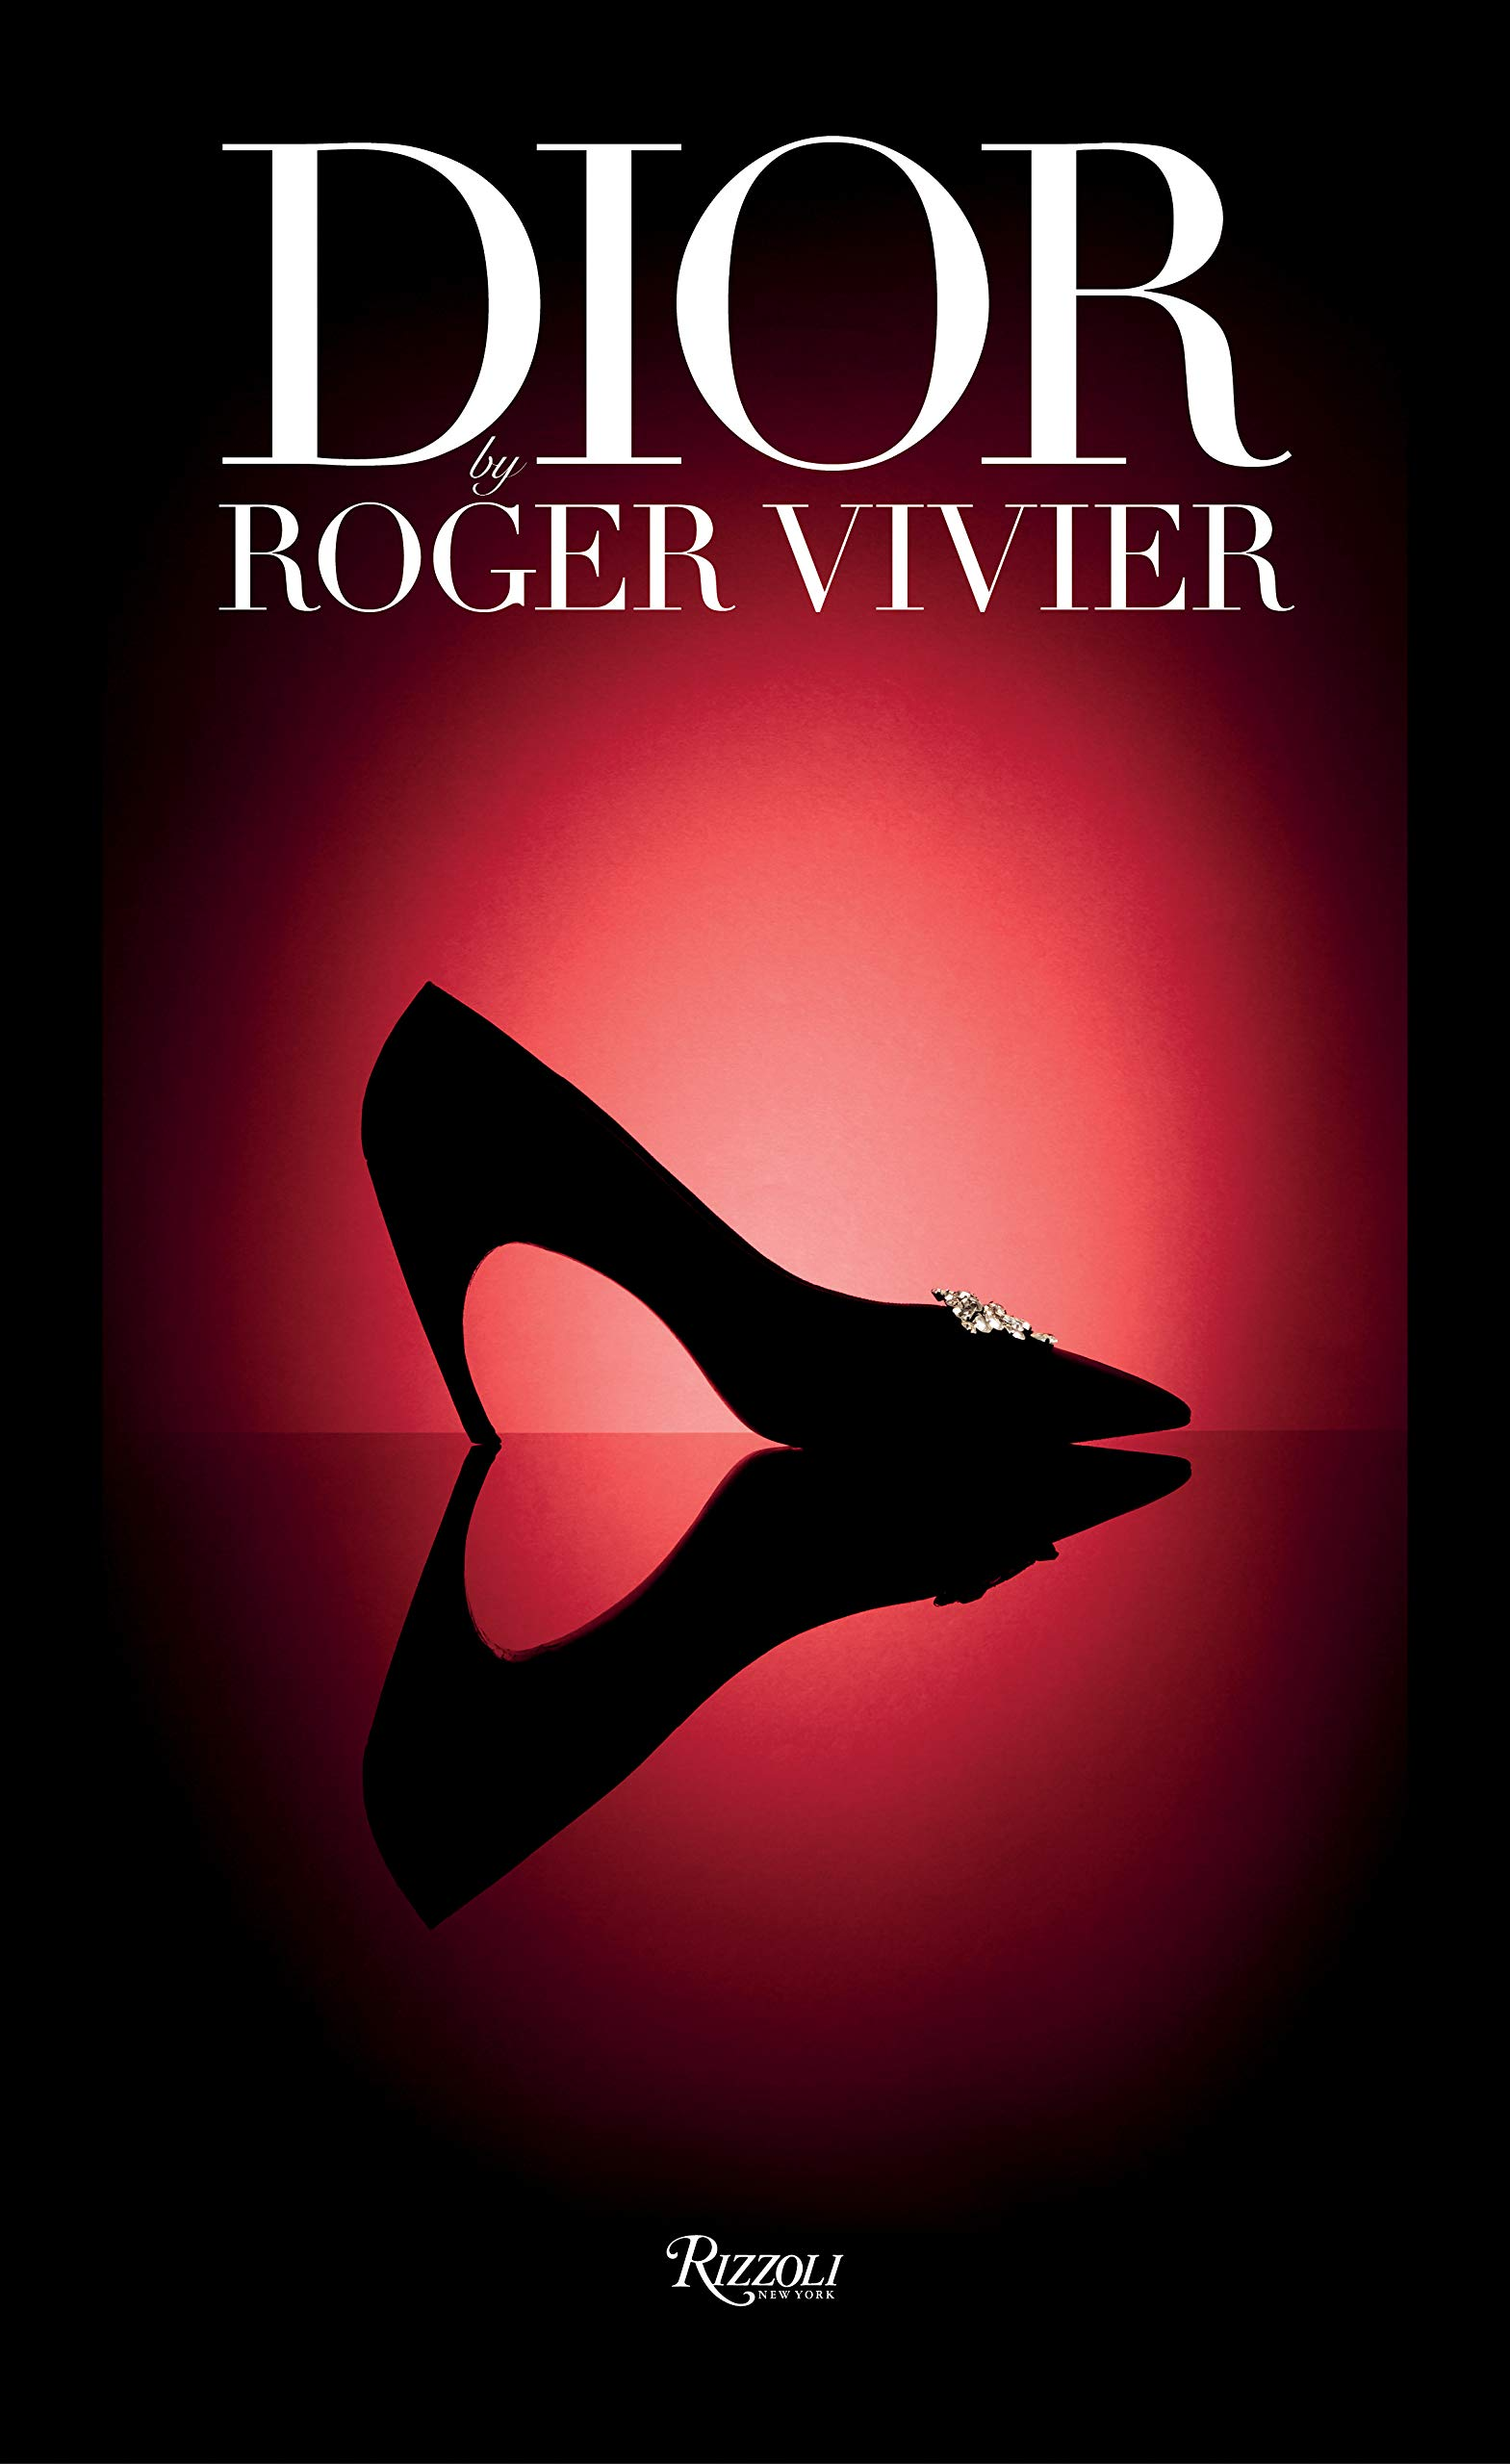 Dior by Roger Vivier: Amazon.co.uk